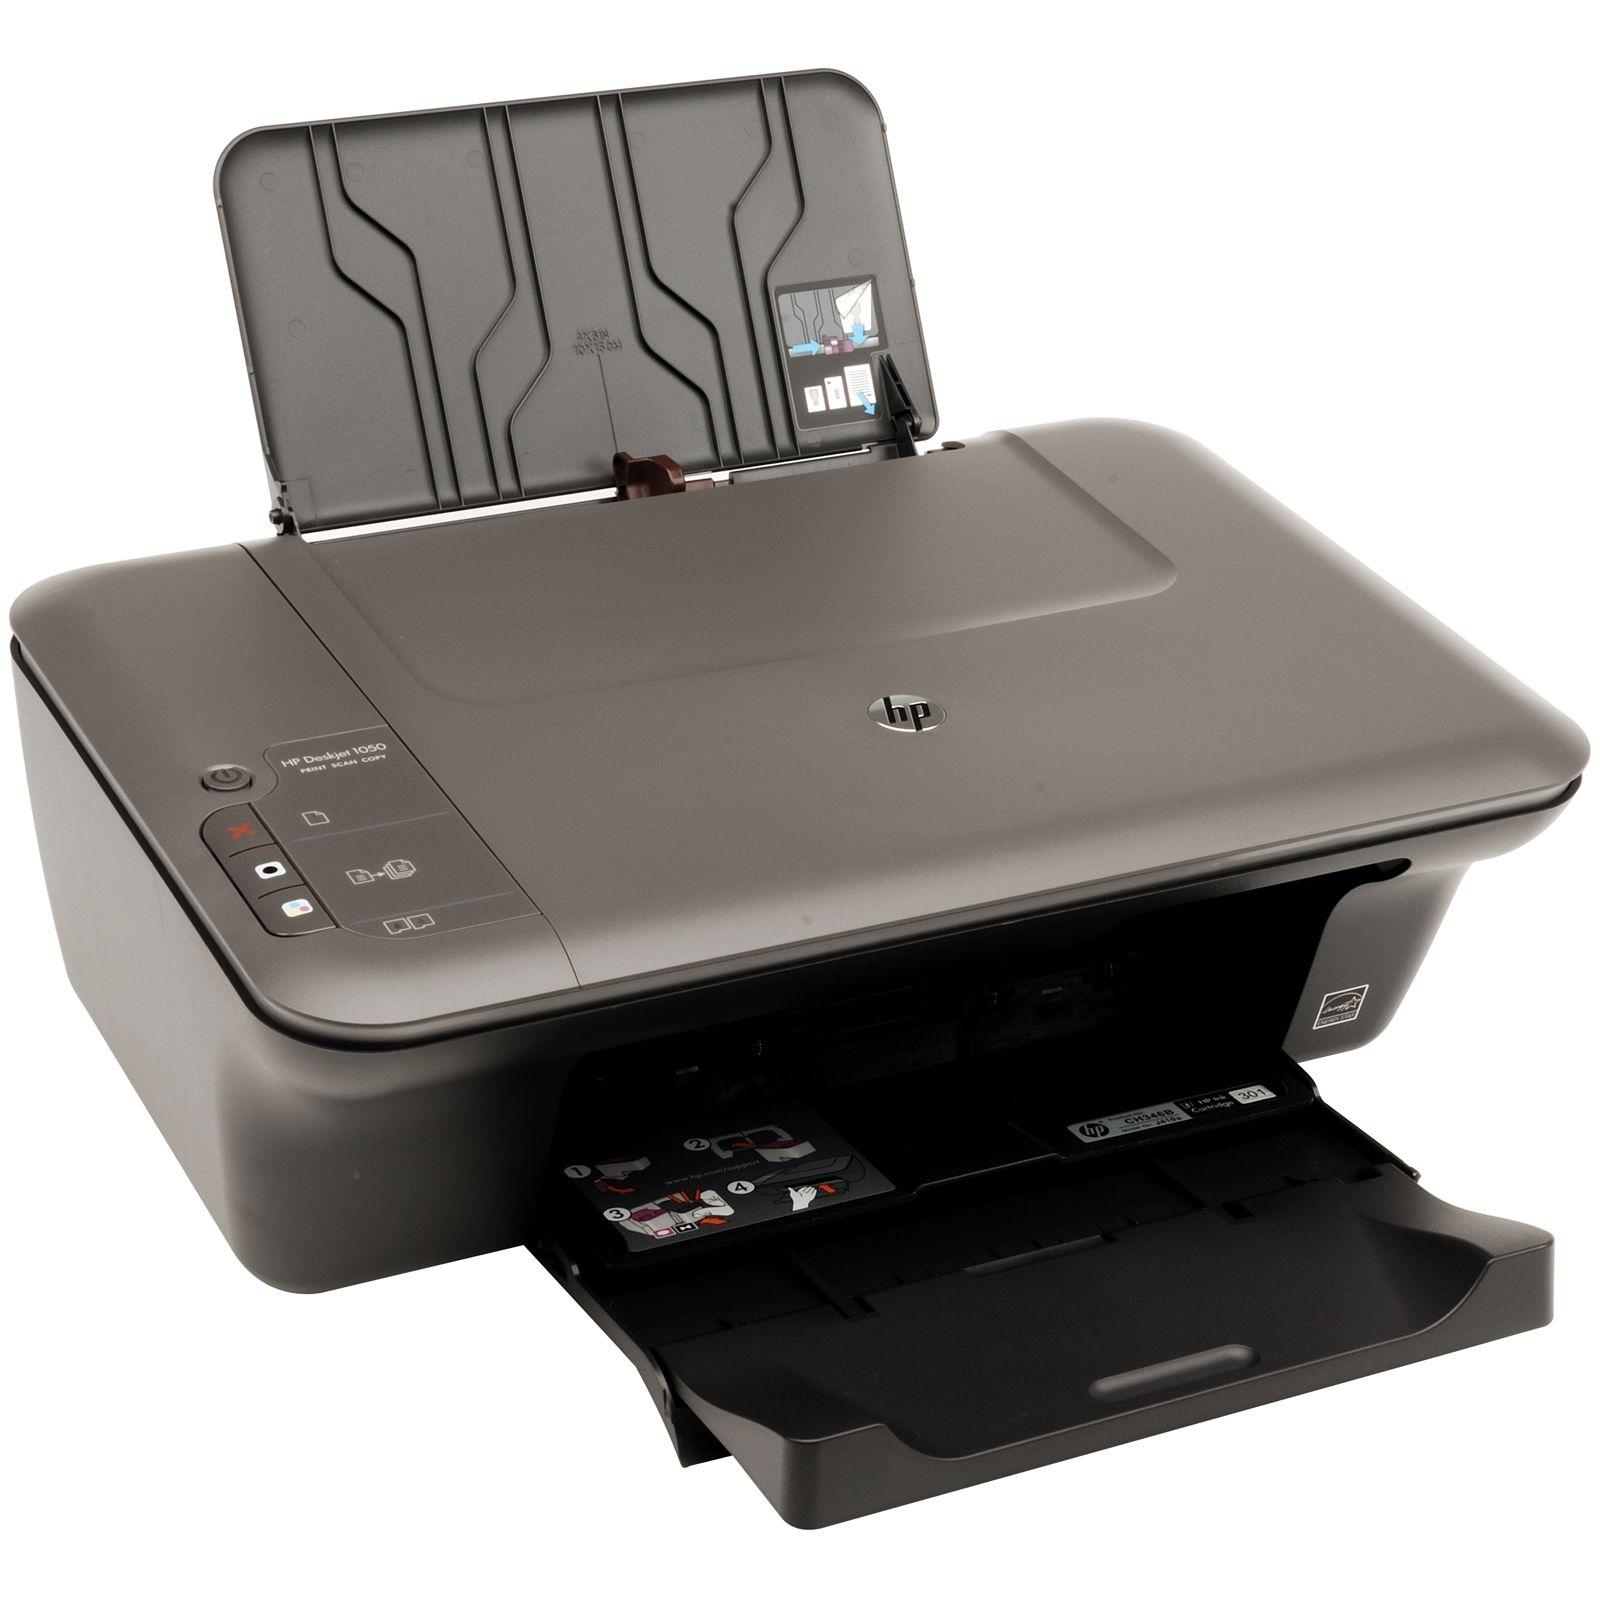 pilote imprimante hp deskjet 1050 pour windows 7